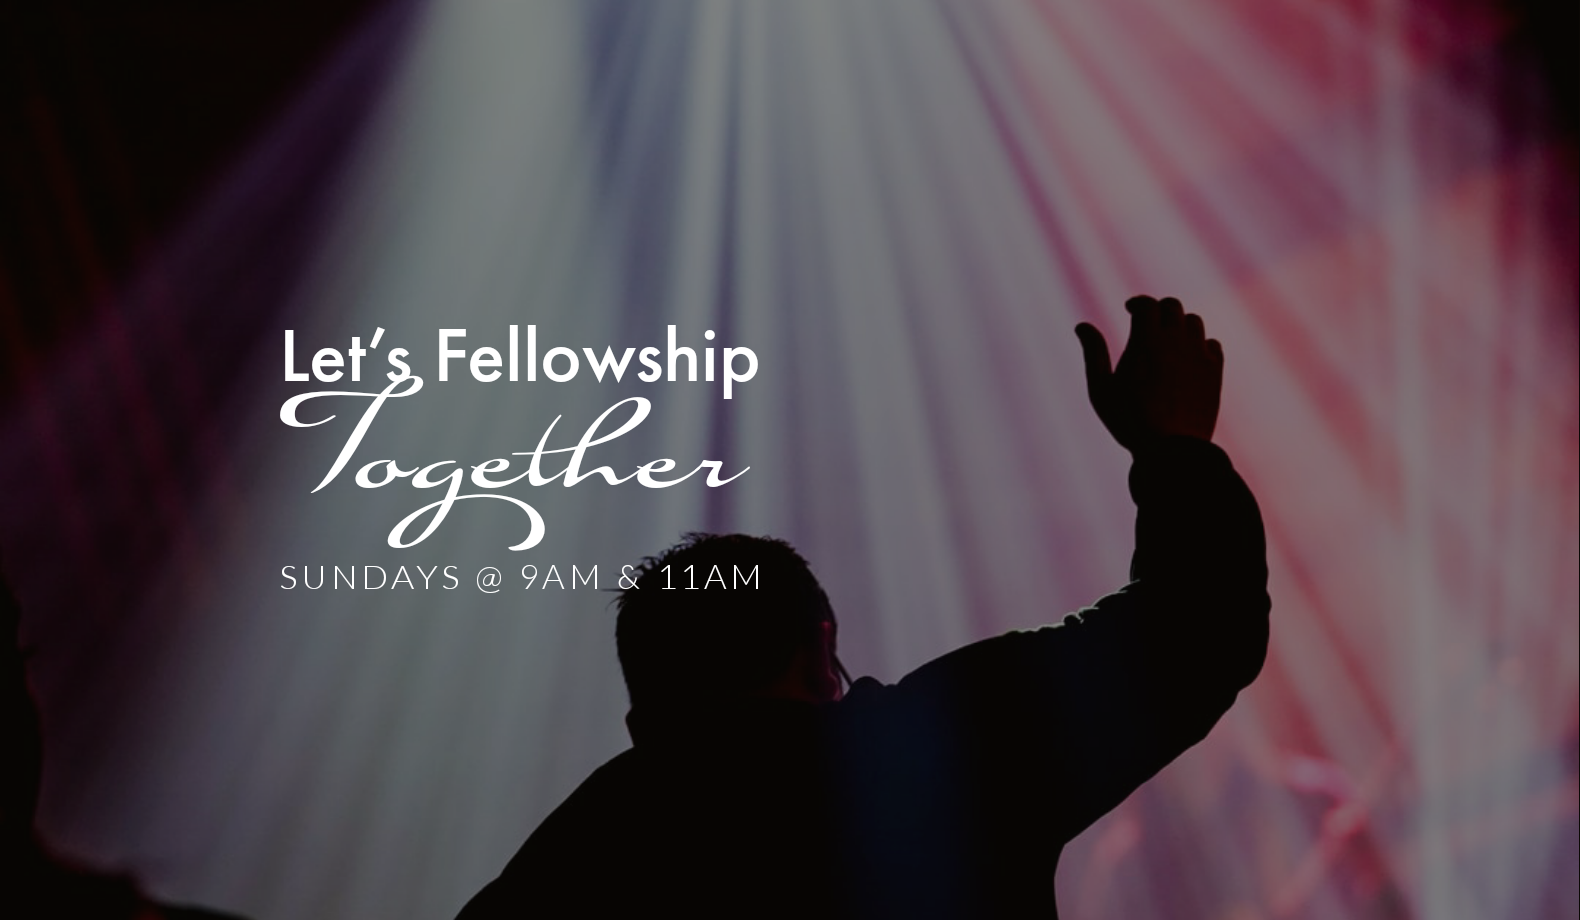 Let's Fellowship Together